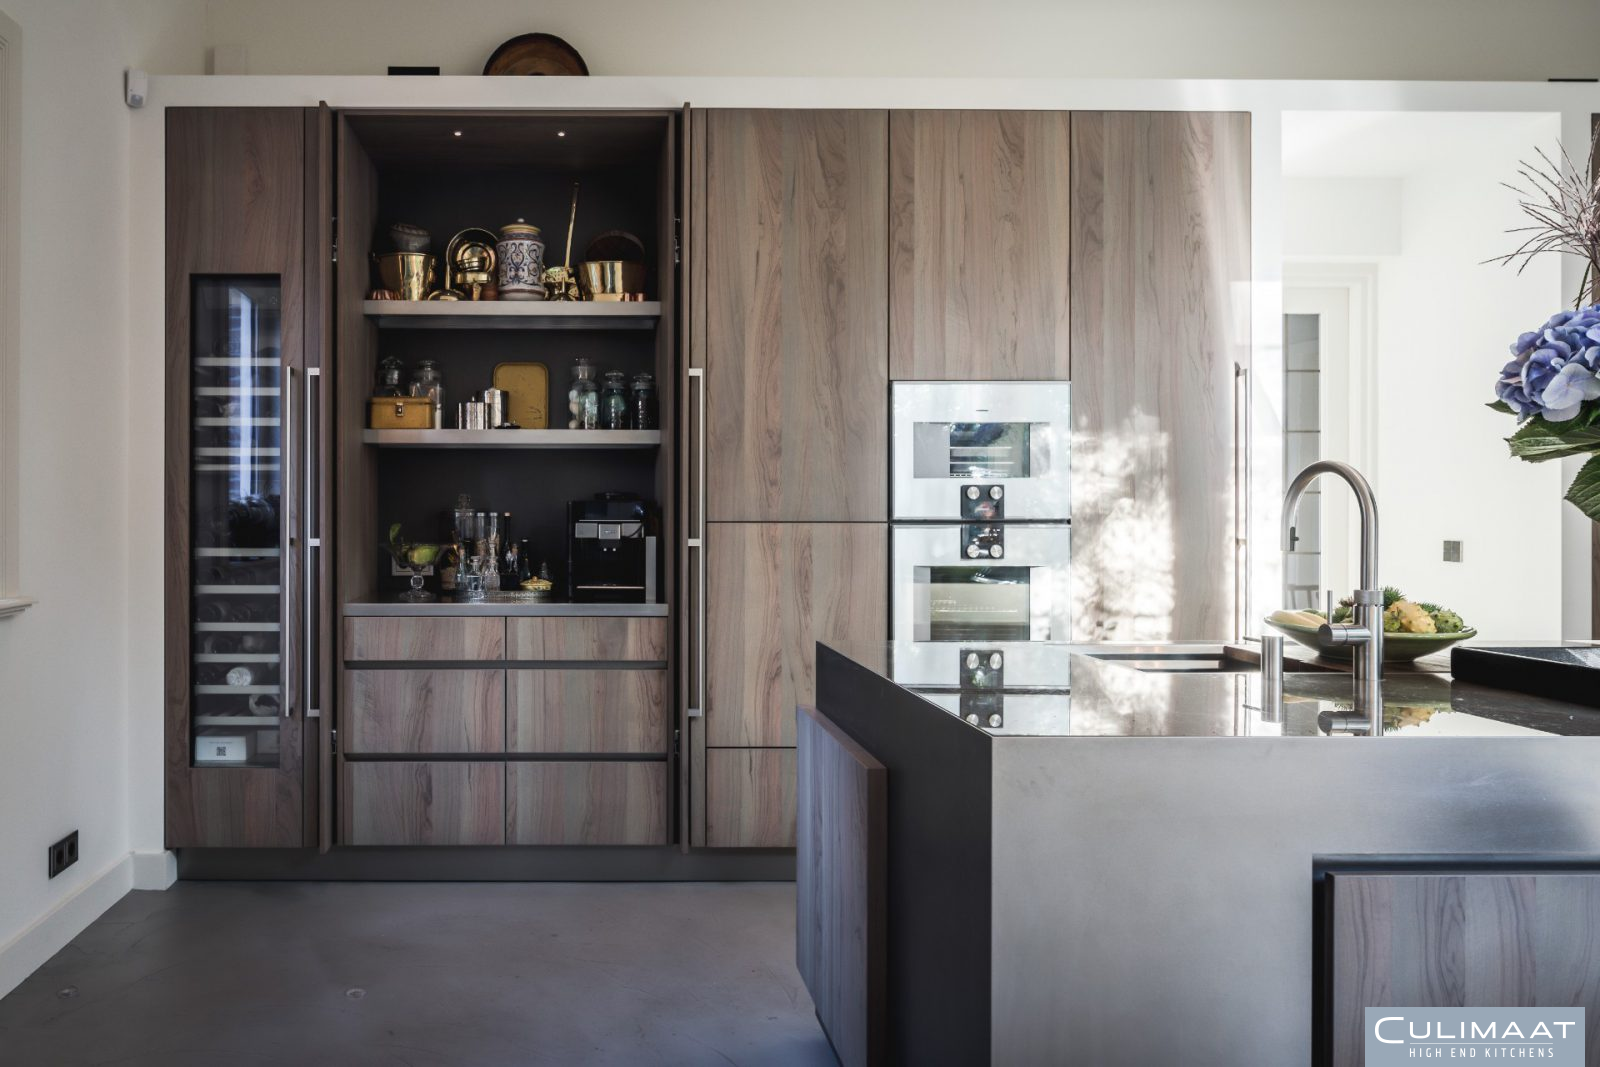 Den haag culimaat high end kitchens